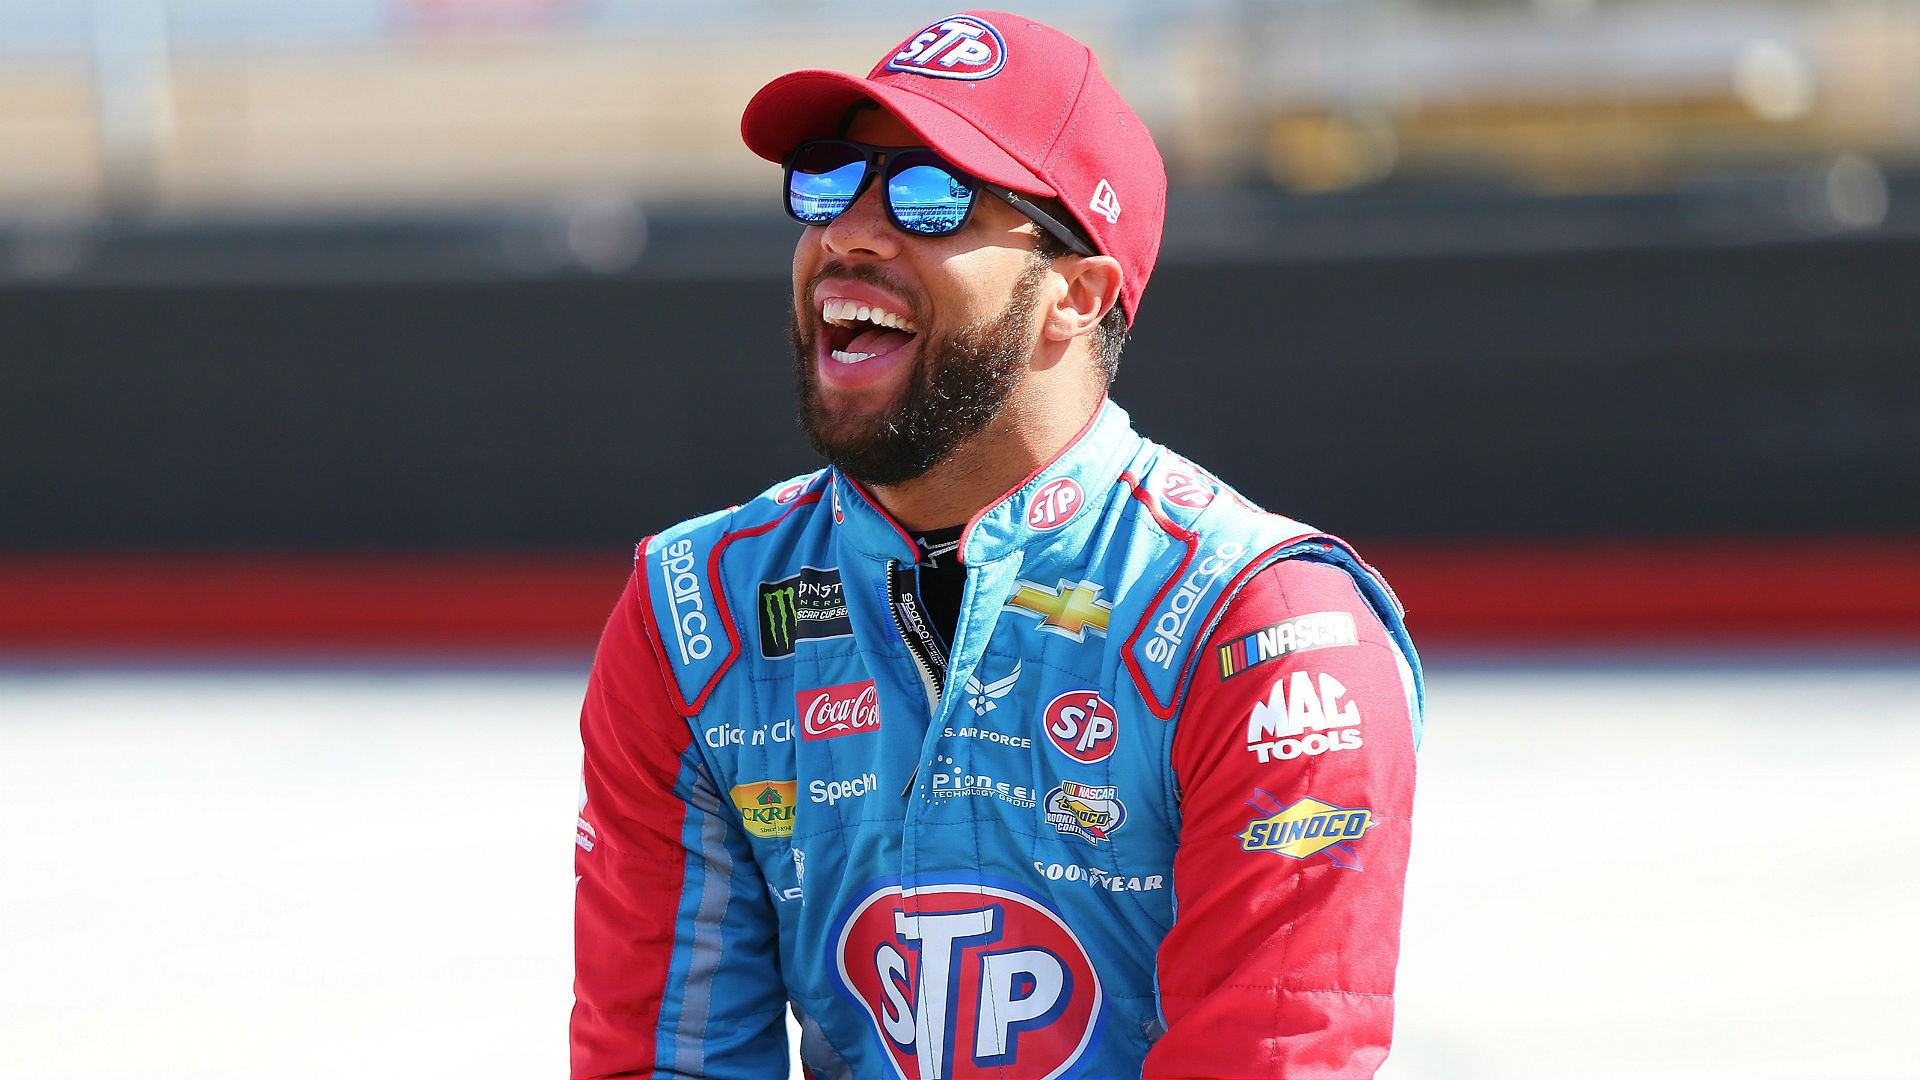 Bubba Wallace gets stuck inside bus, escaped through toilet hatch